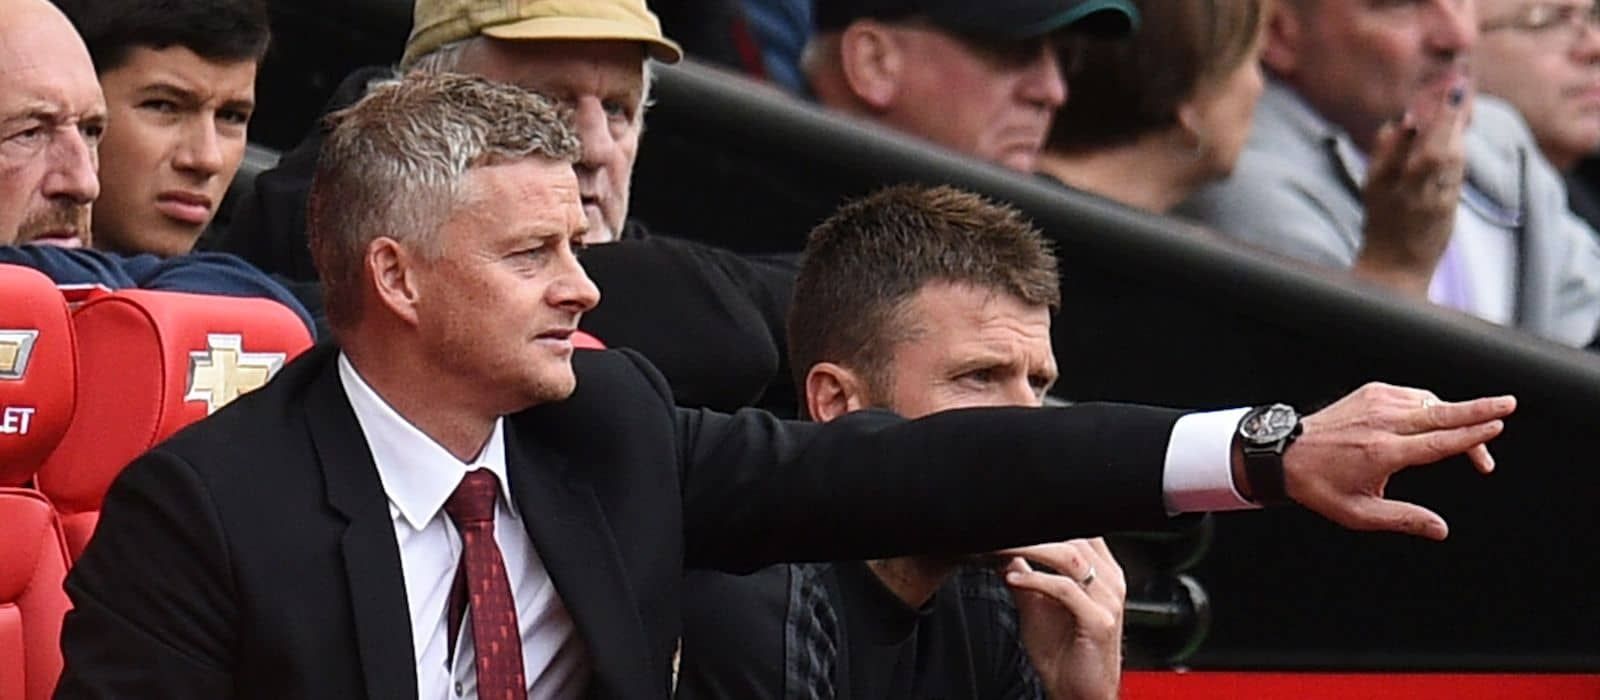 Ole Gunnar Solskjaer explains differences between this season and last